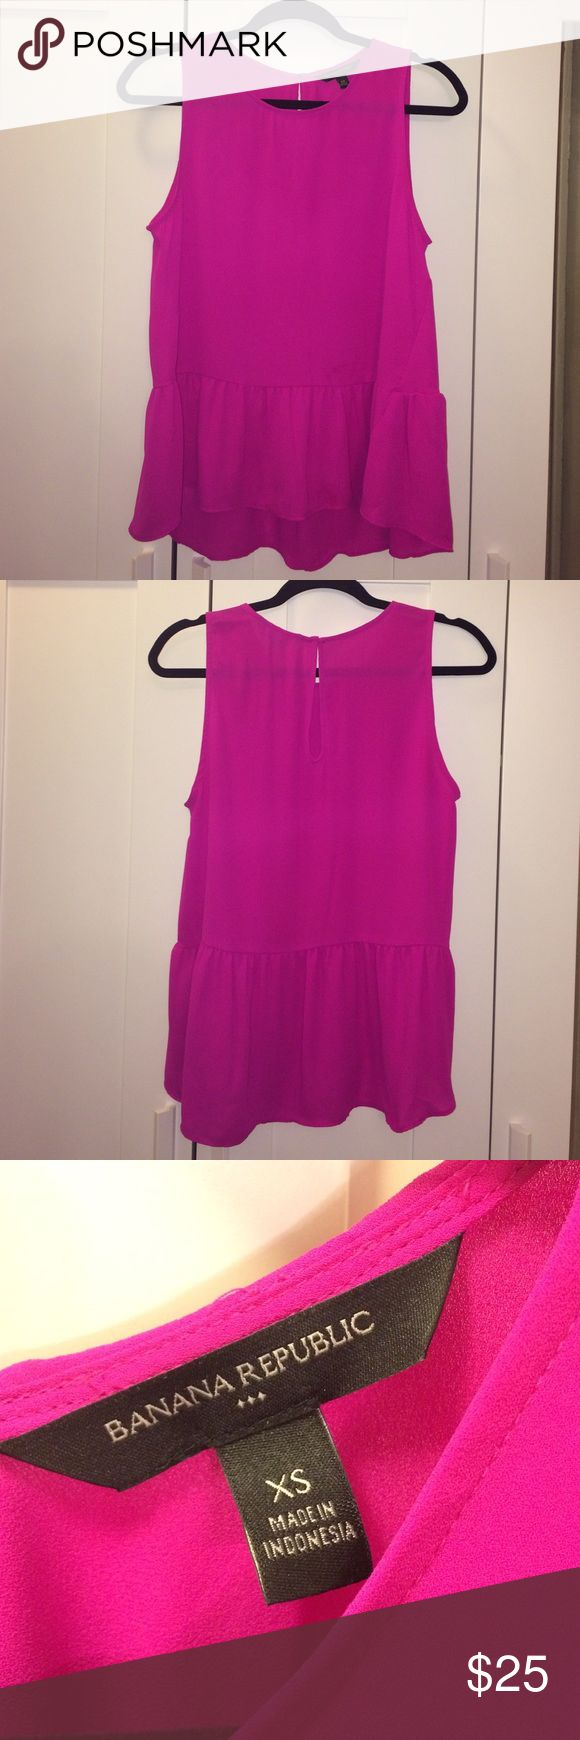 Banana Republic Factory Store hot pink peplum top Hot pink flowy peplum top from Banana Republic Factory Store. Only worn 1-2 times, in excellent condition. Banana Republic Tops Blouses